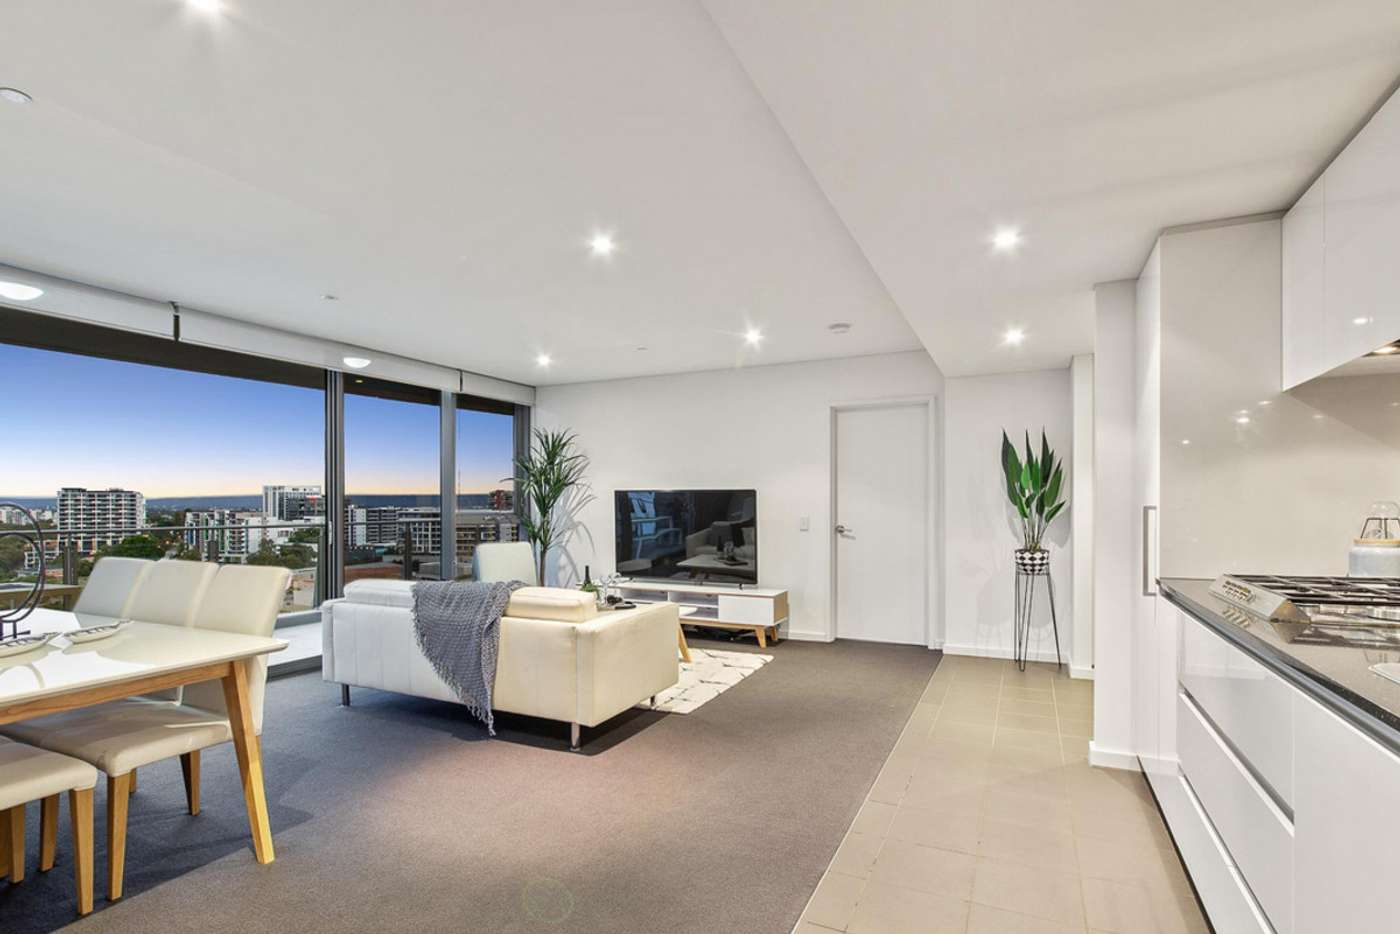 Fifth view of Homely apartment listing, 1307/96 Bow River Crescent, Burswood WA 6100